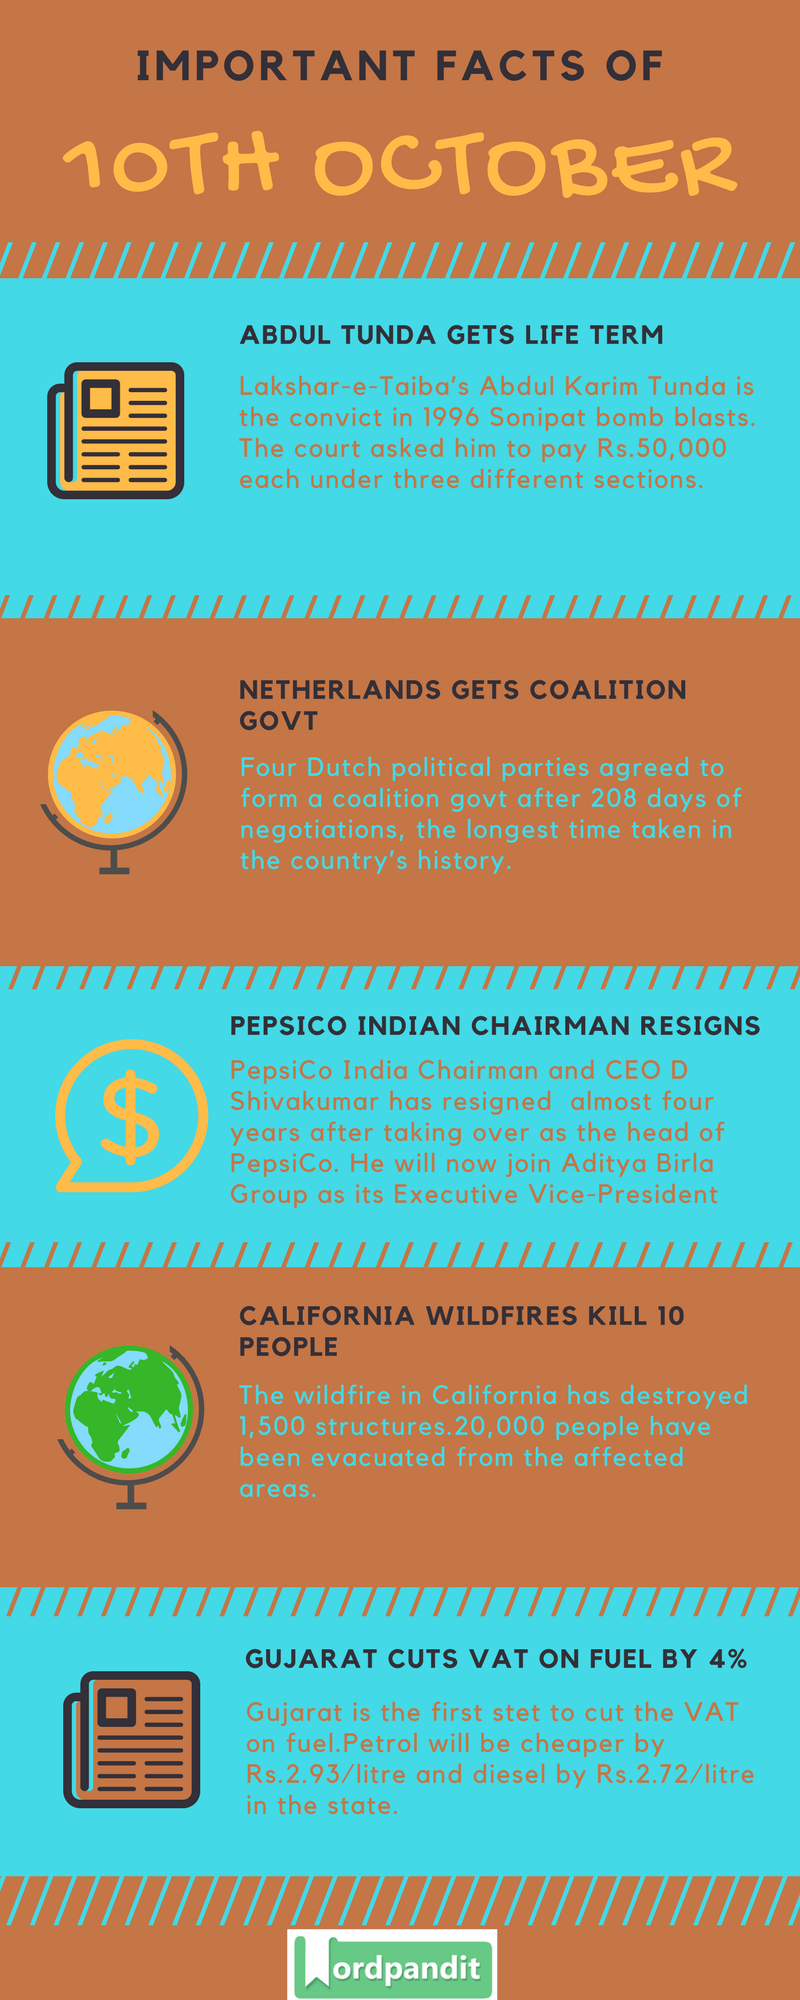 Daily-Current-Affairs-10-october-2017-Current-Affairs-Quiz-october-10-2017-Current-Affairs-Infographic